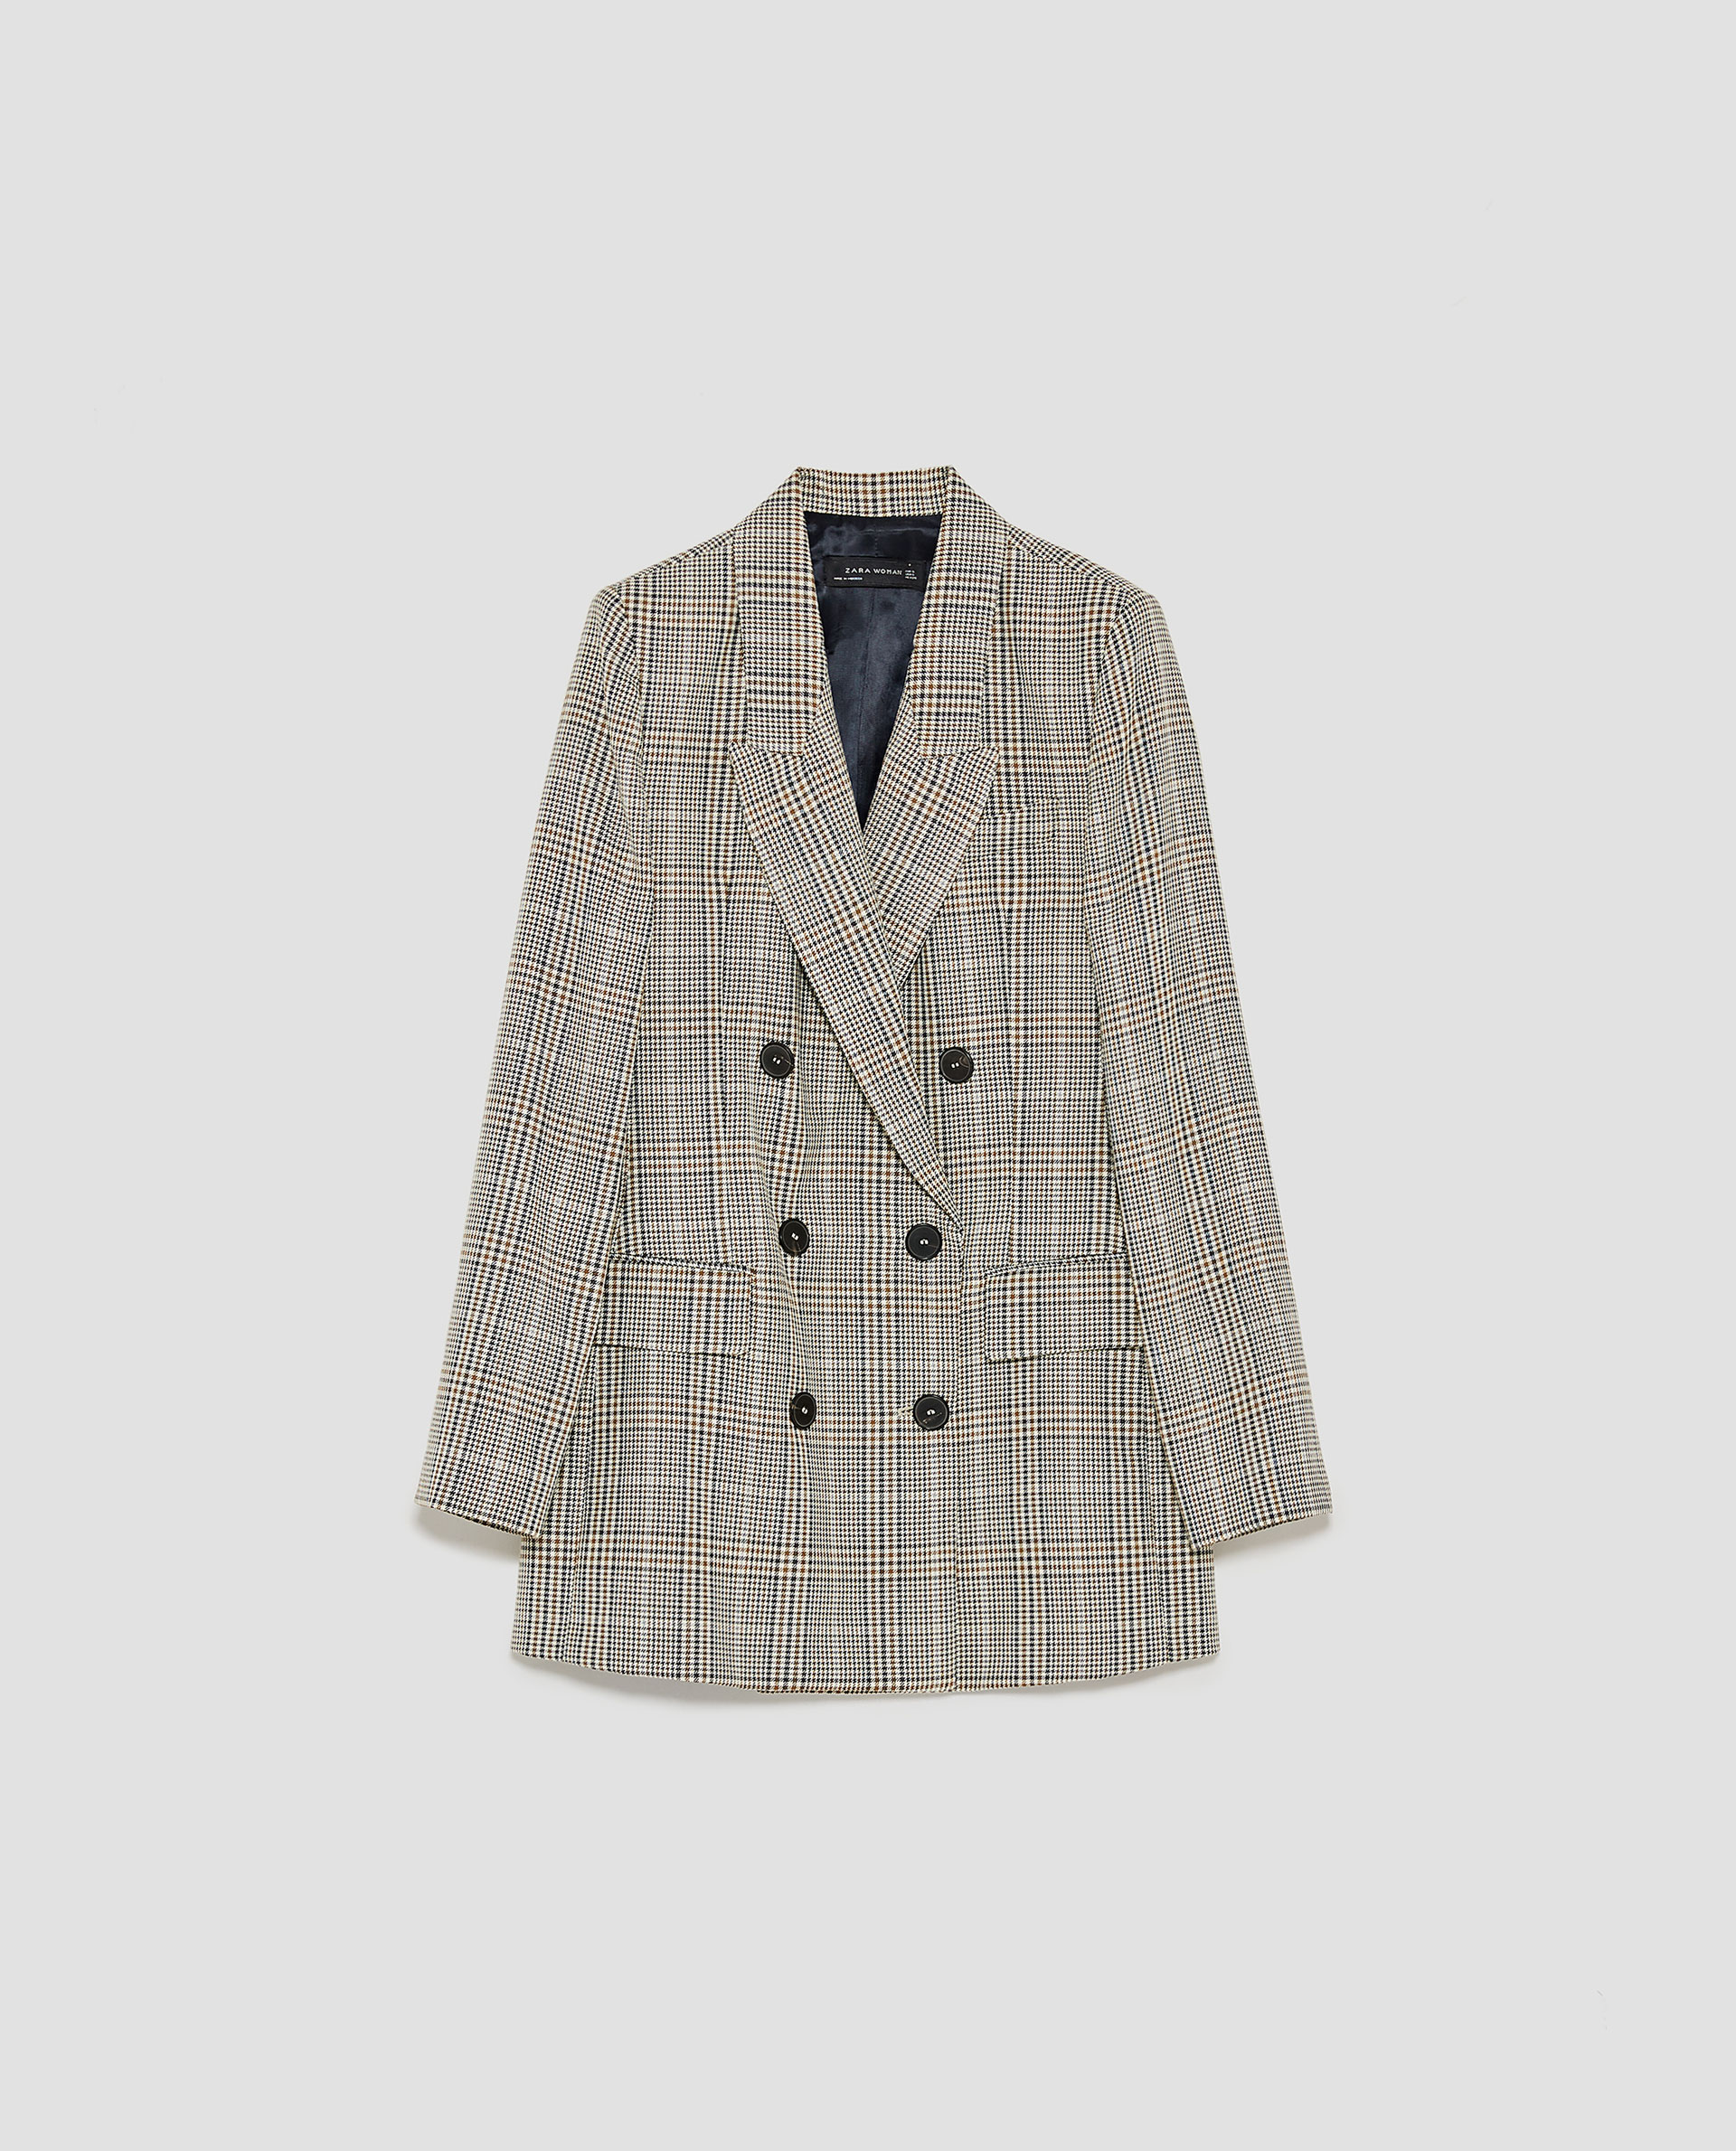 4fbc280f Zara's latest blazer is top of our Monday must-have list   Her.ie